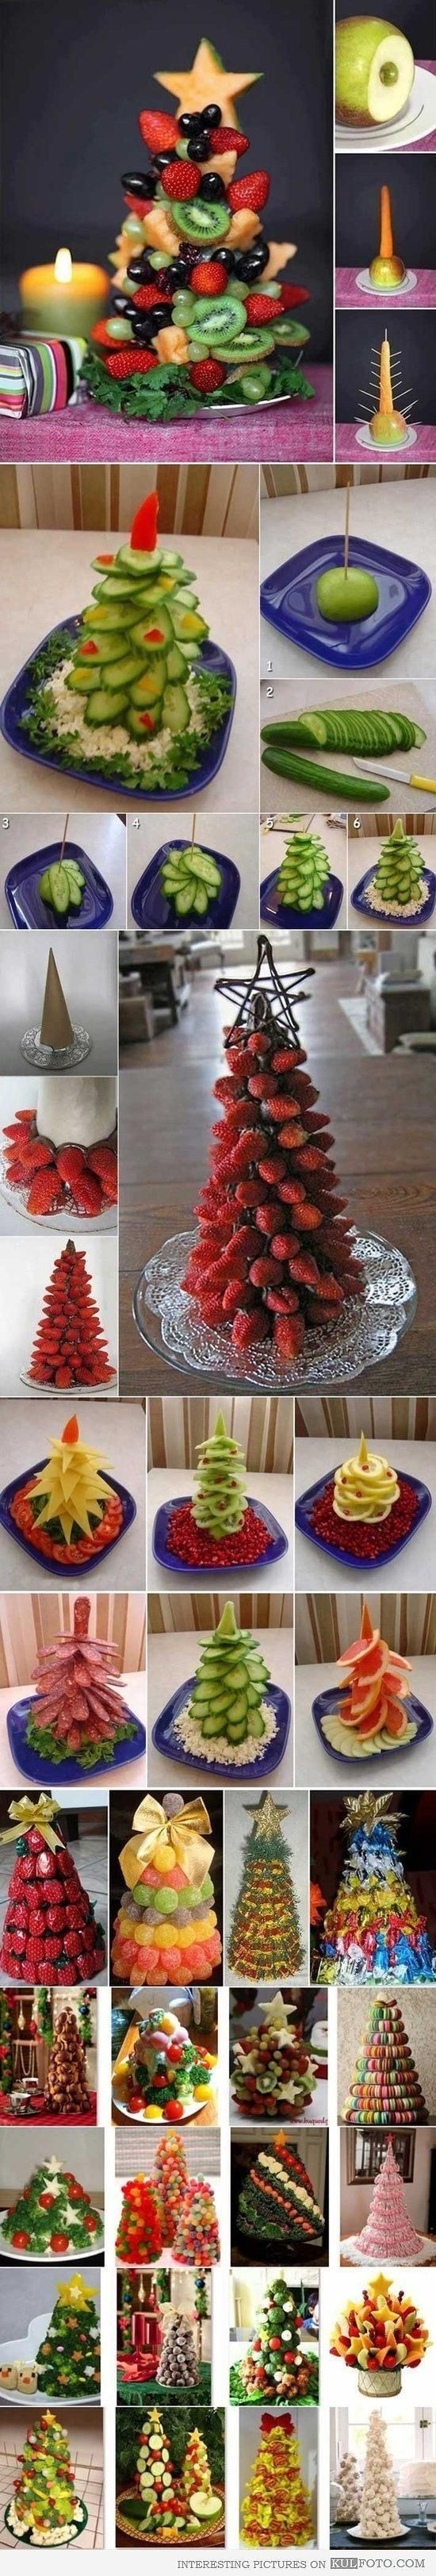 Fruit Christmas trees - Funny how-to guide with pictures for creating beautiful and cute Christmas trees from fruit and vegetables. * by freda